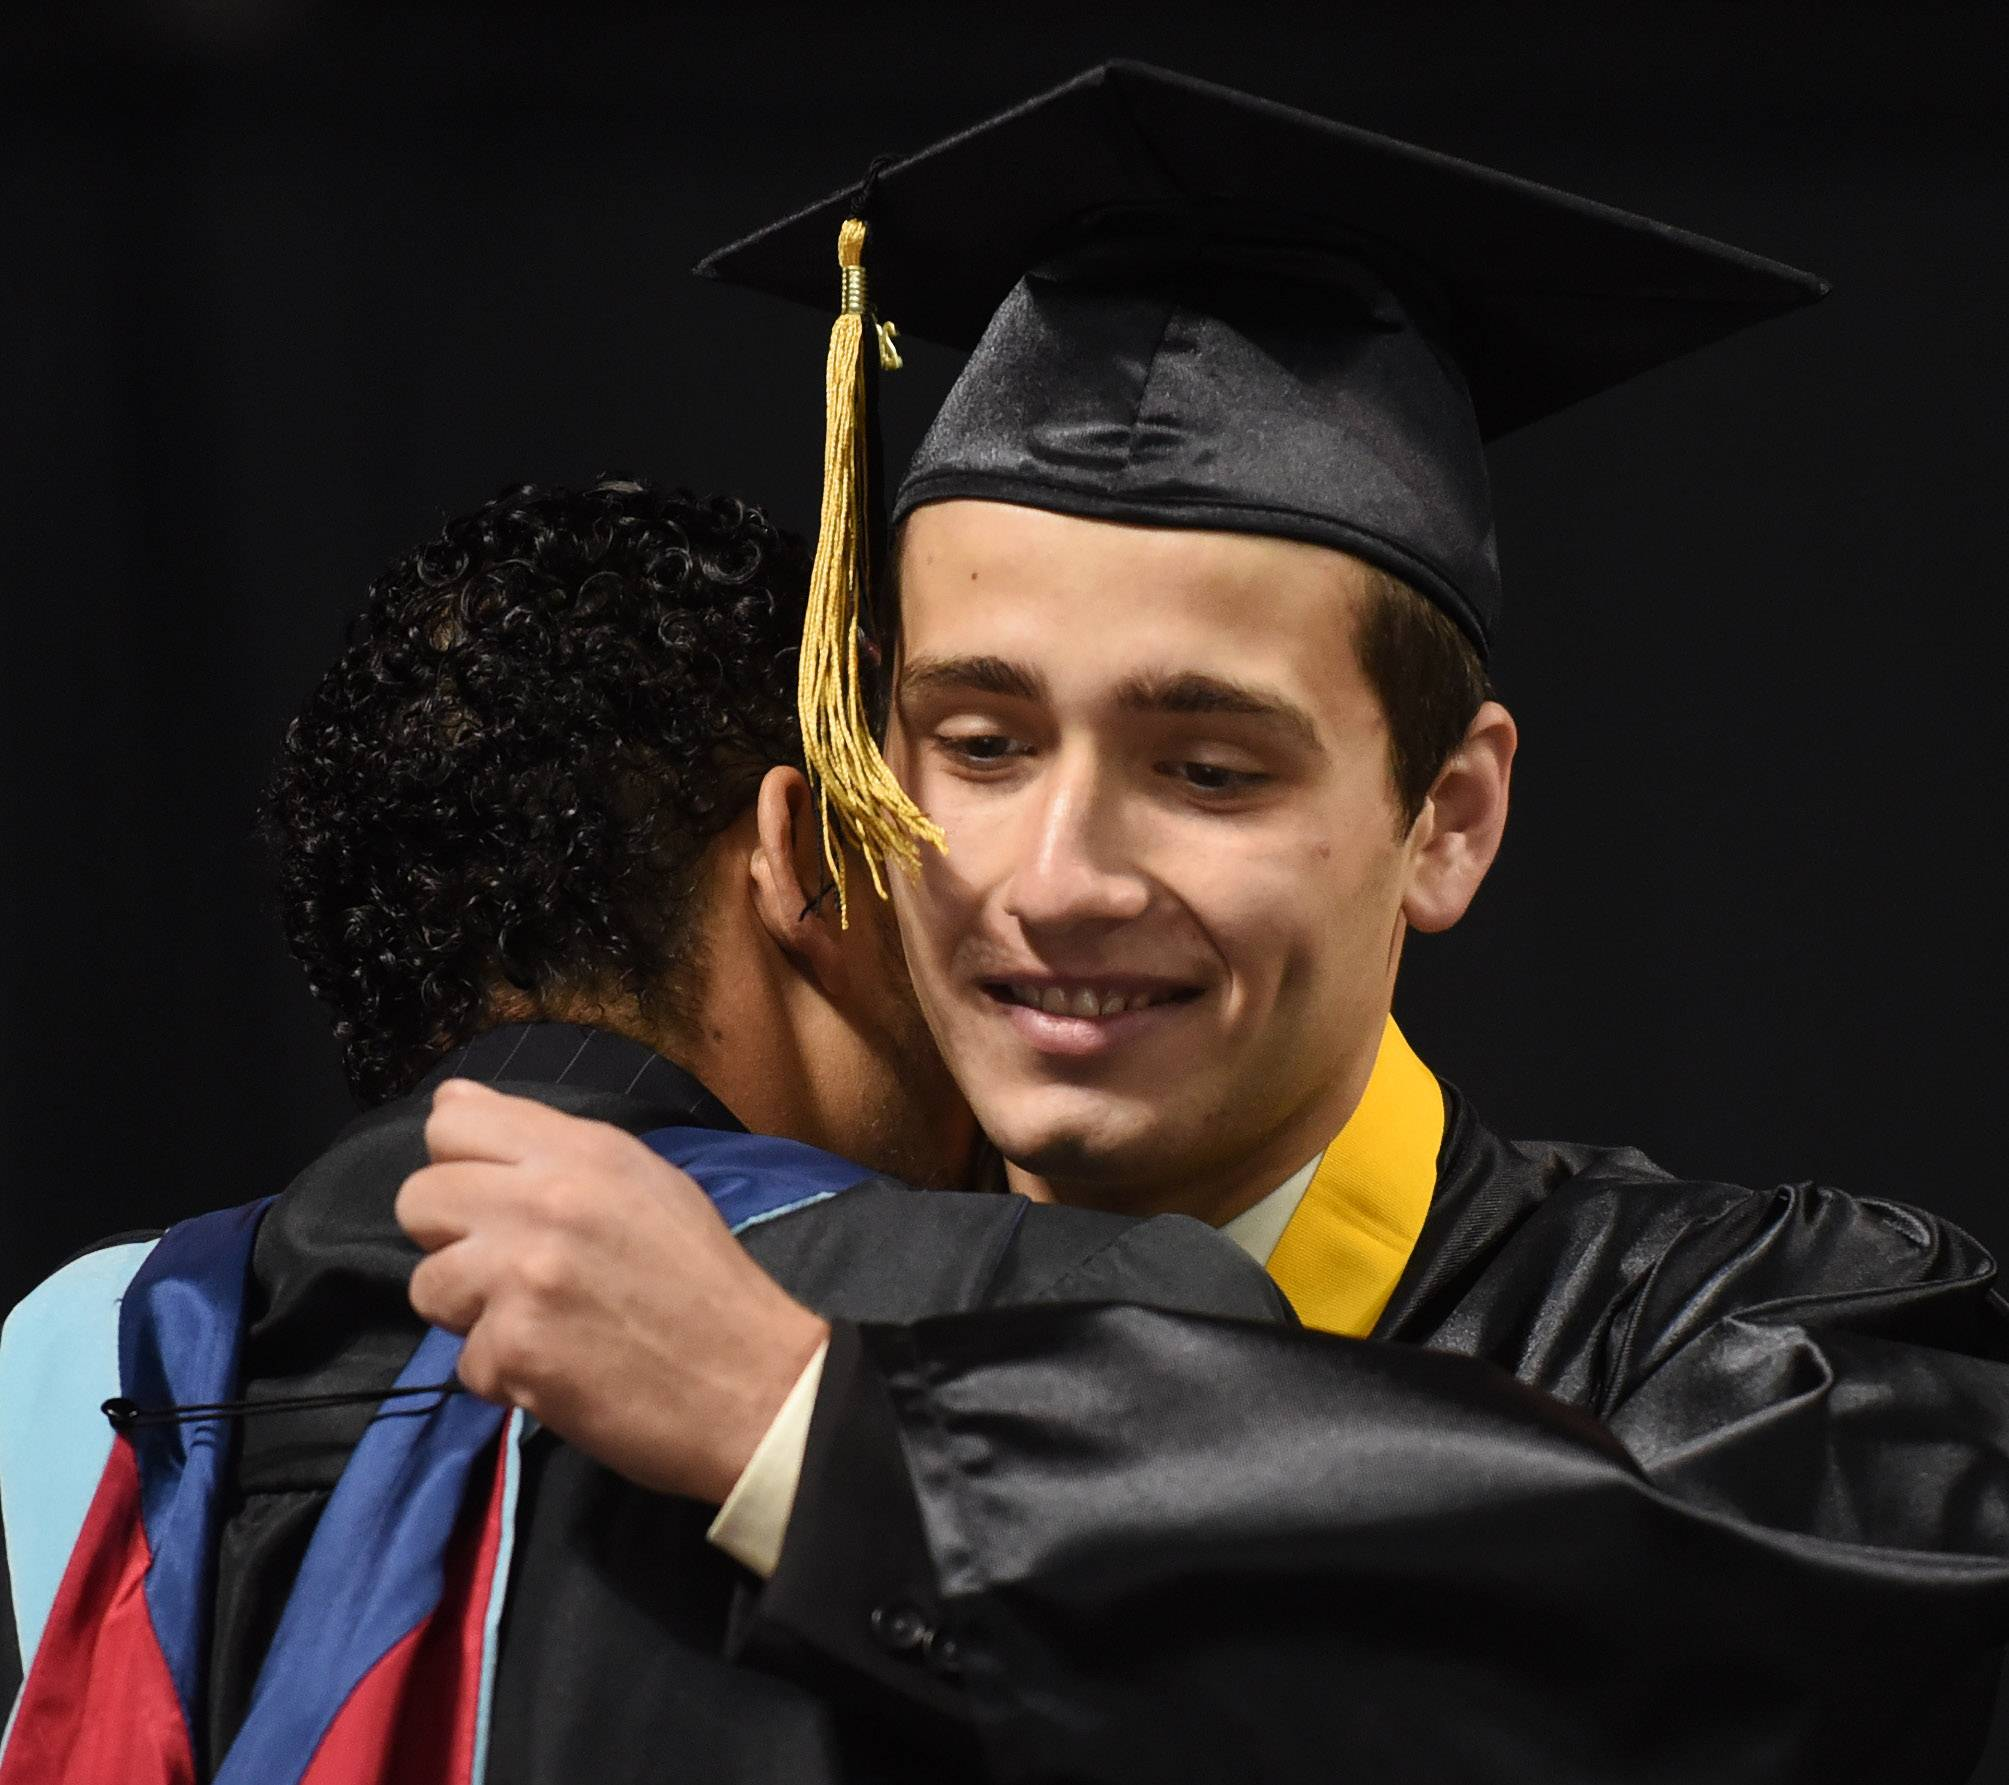 Valedictorian Theofilos Lolis hugs Principal Ariel Correa as he is introduced during the Streamwood High School graduation at the Sears Centre in Hoffman Estates Saturday.